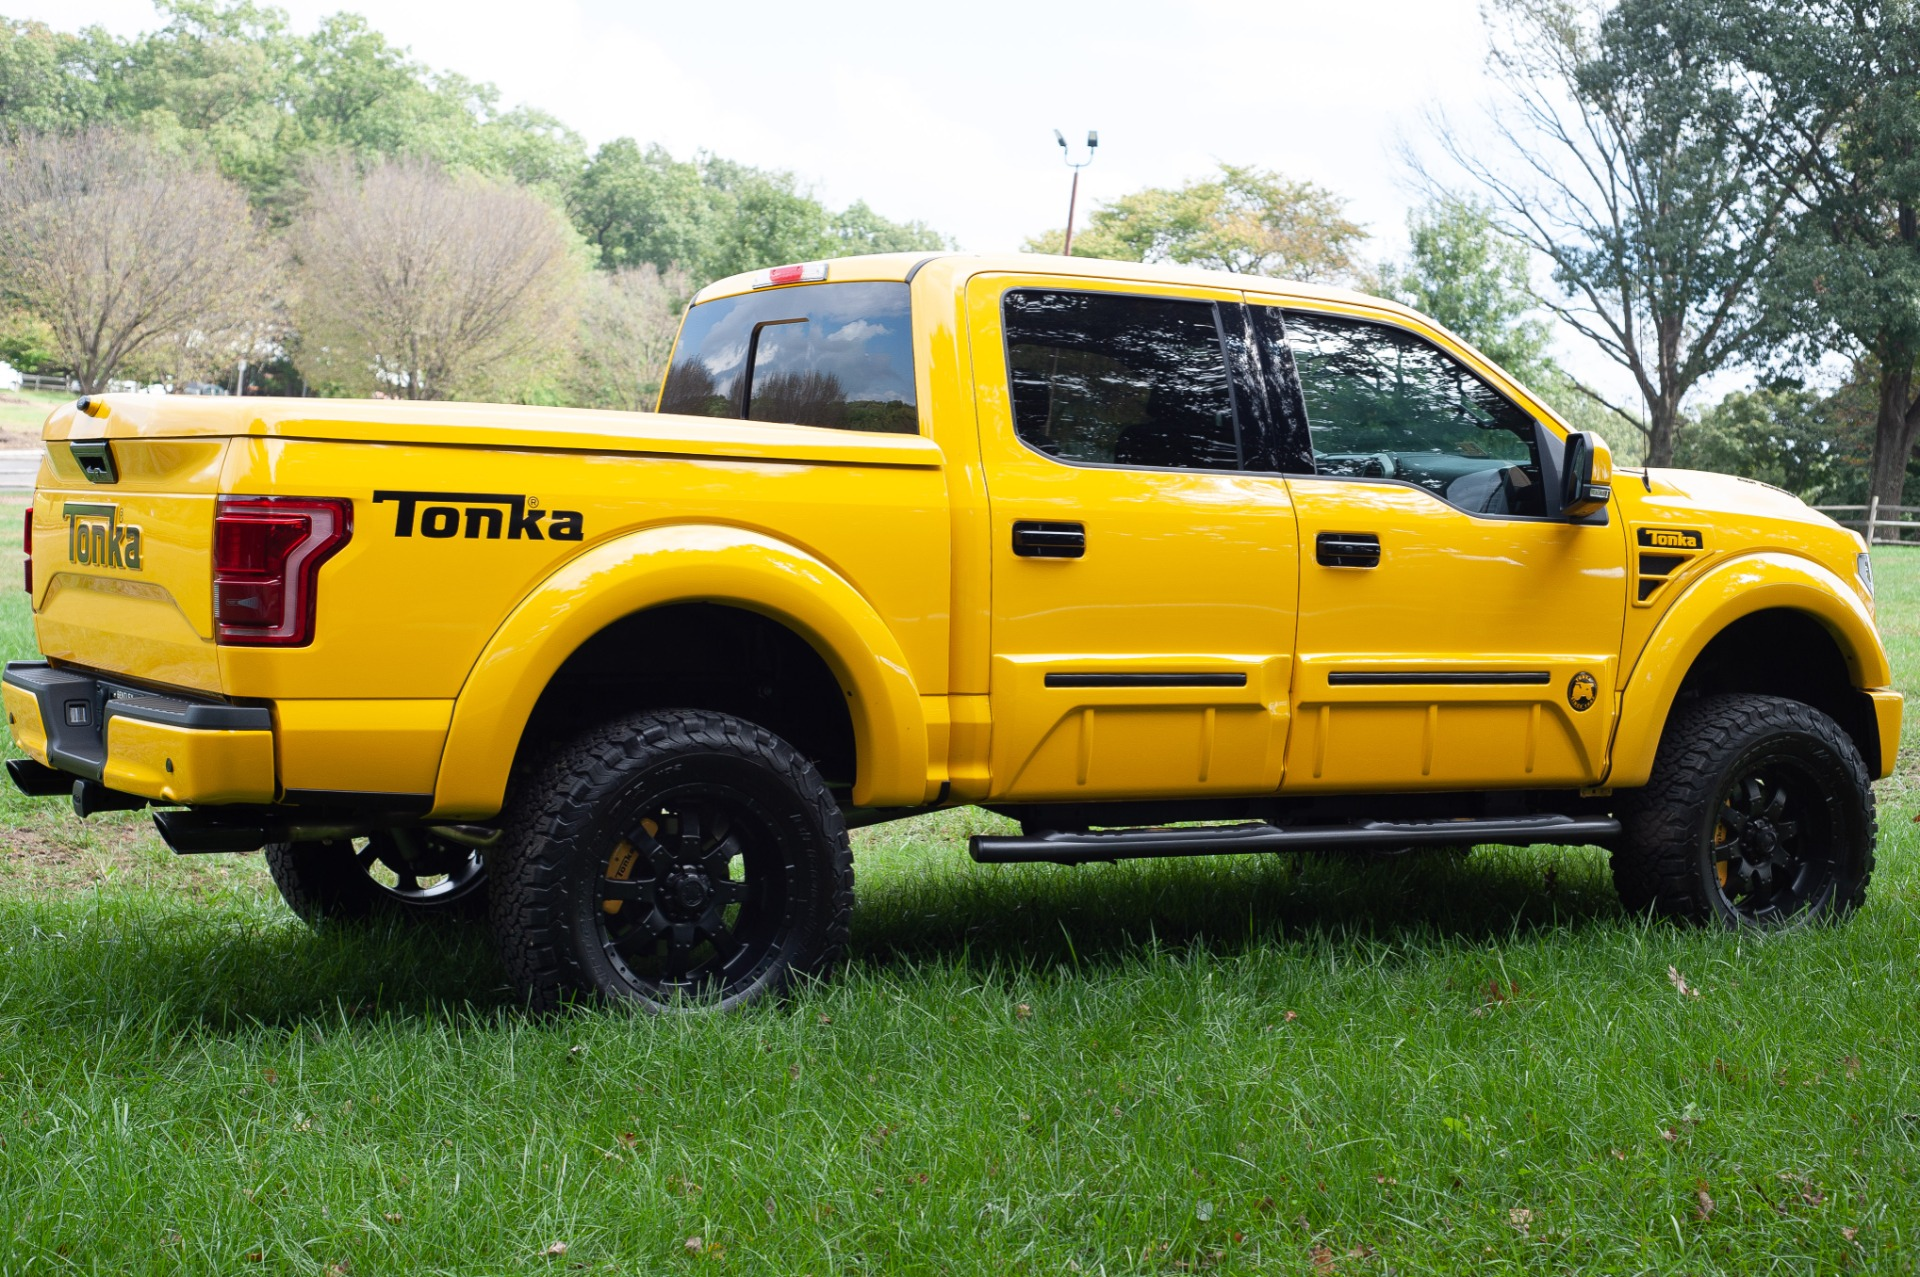 Ford F 150 Tonka >> 2016 Ford F 150 Tonka Stock Pe27090 For Sale Near Vienna